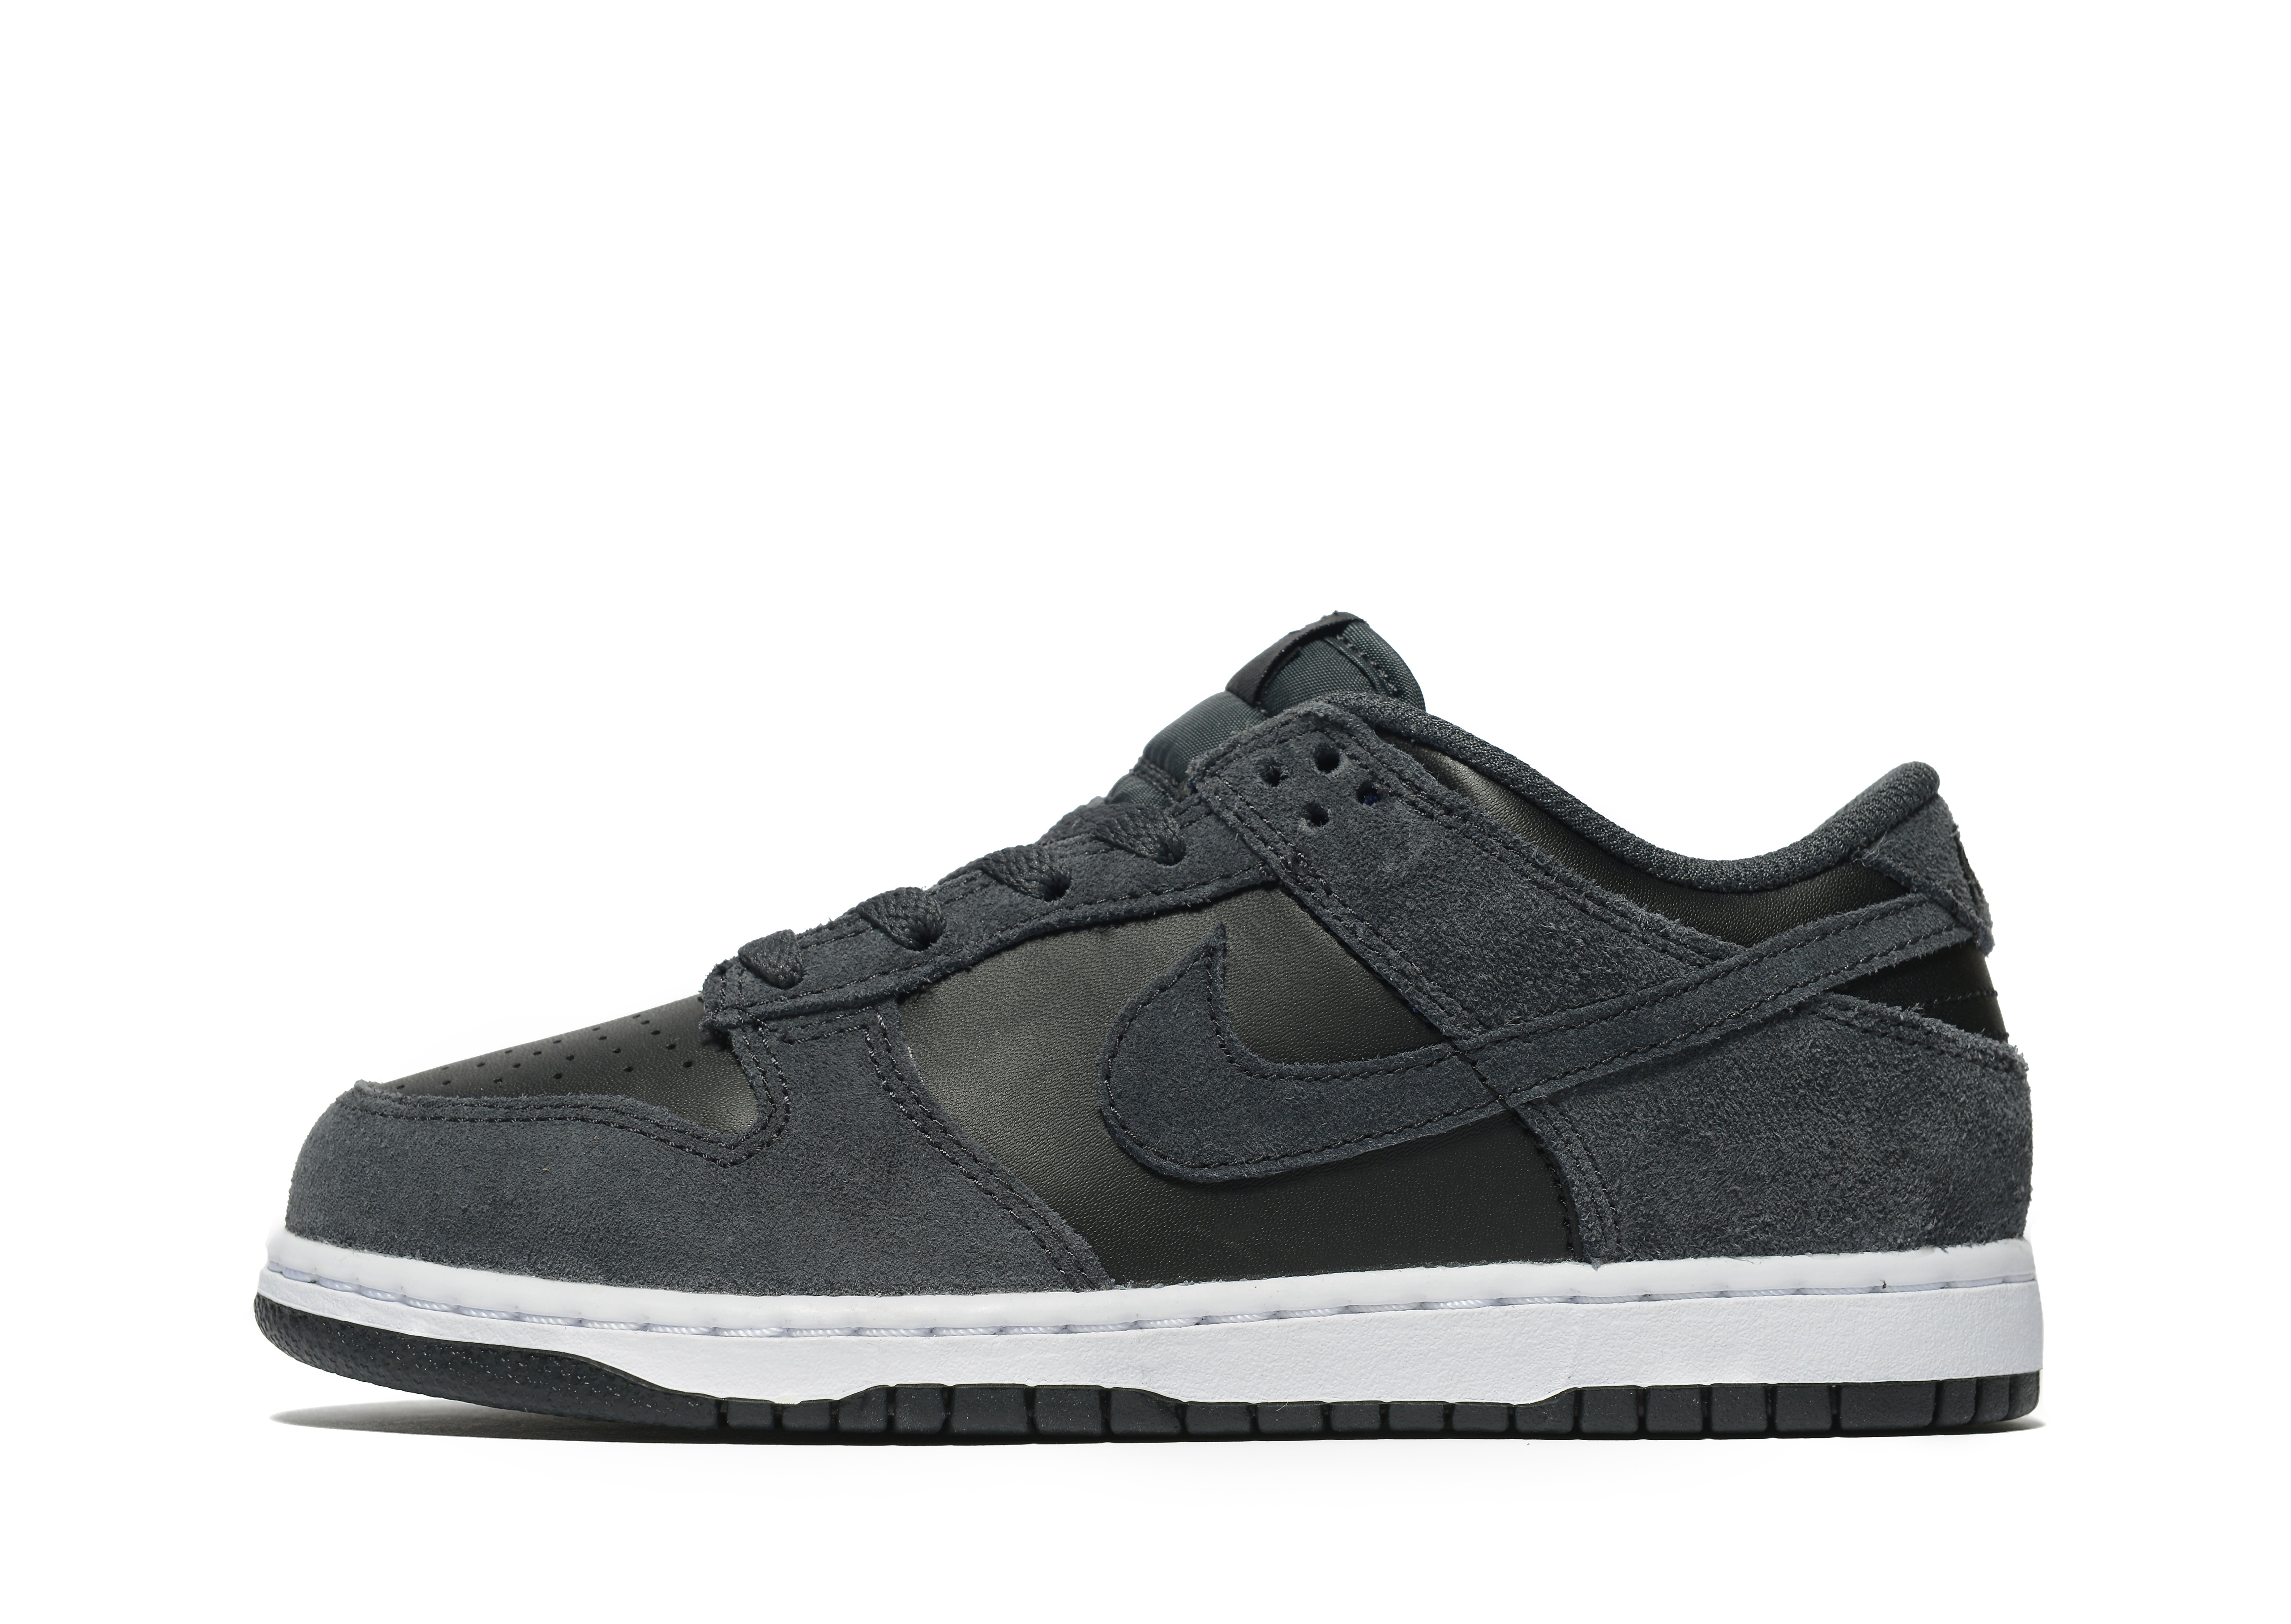 Nike Dunk Low Children